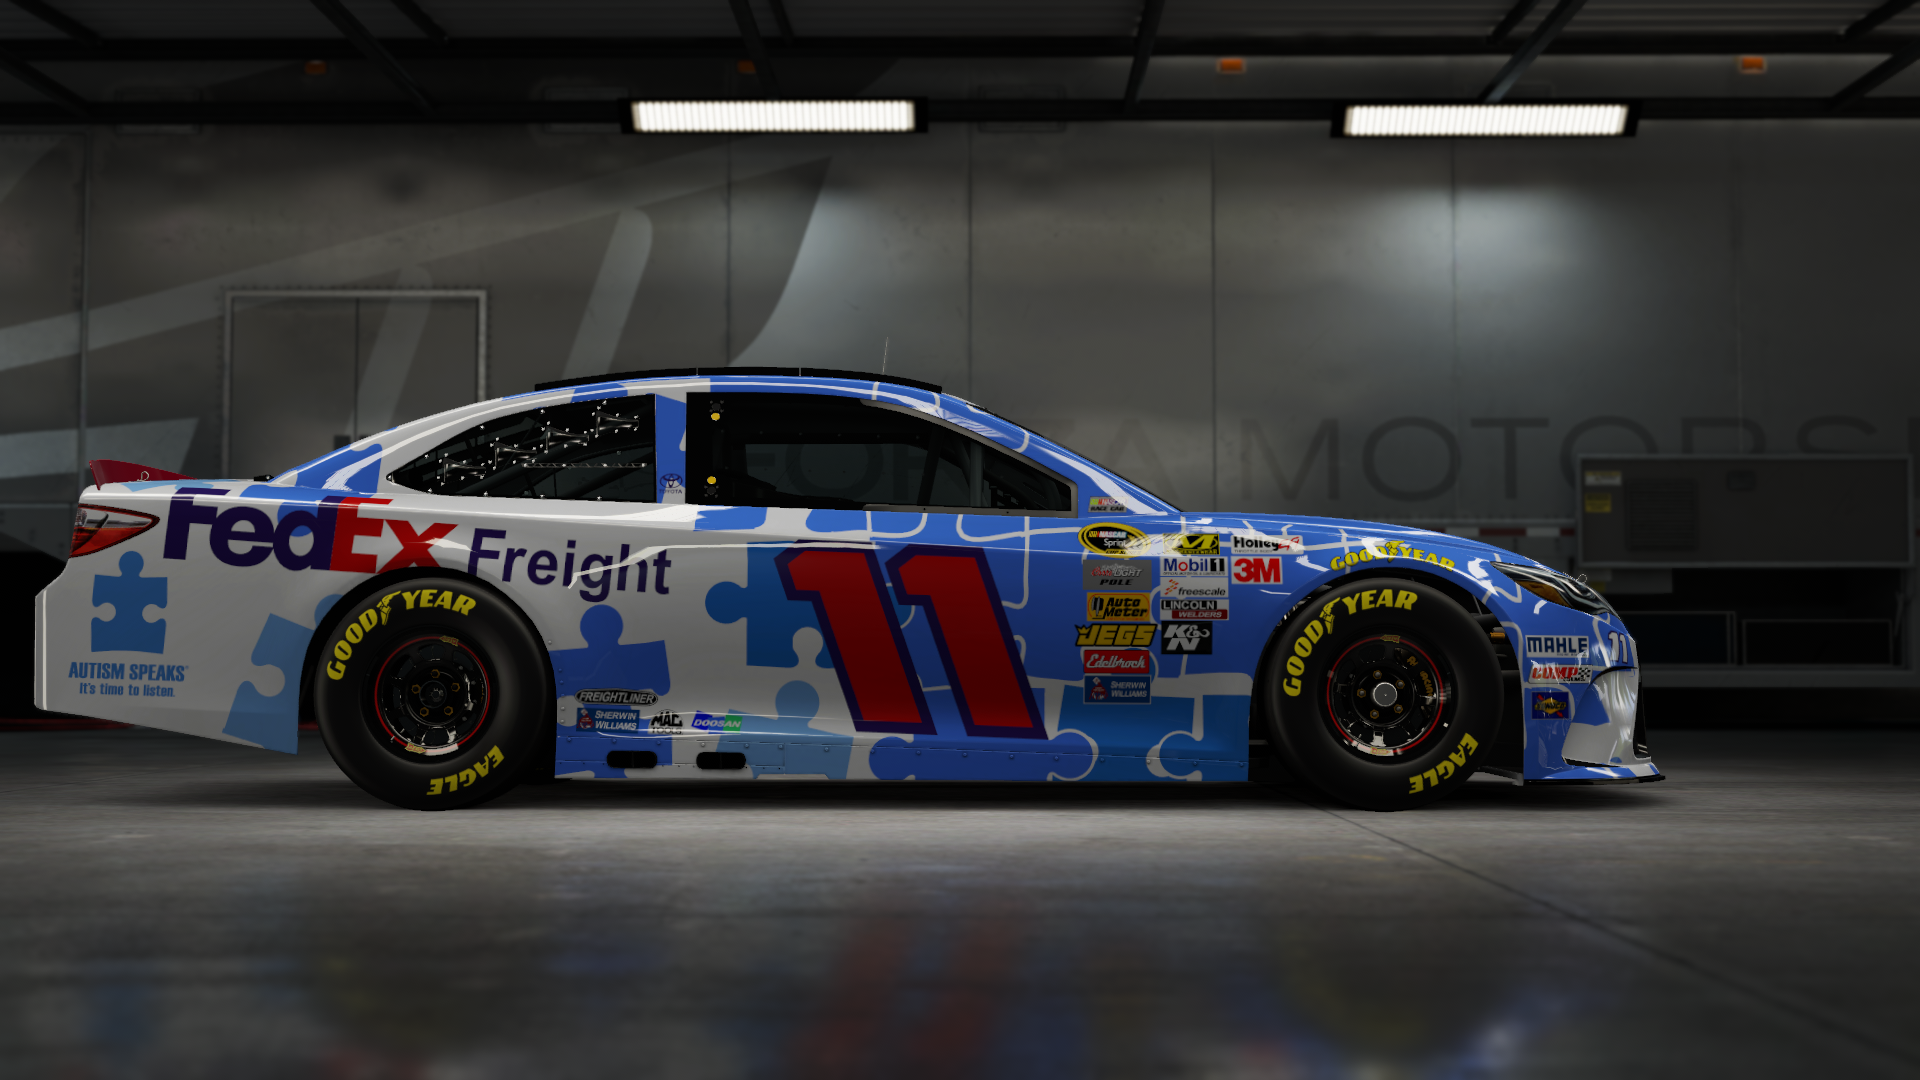 On the #11 Joe Gibbs Racing FedEx Express, Made by SweedishThunder